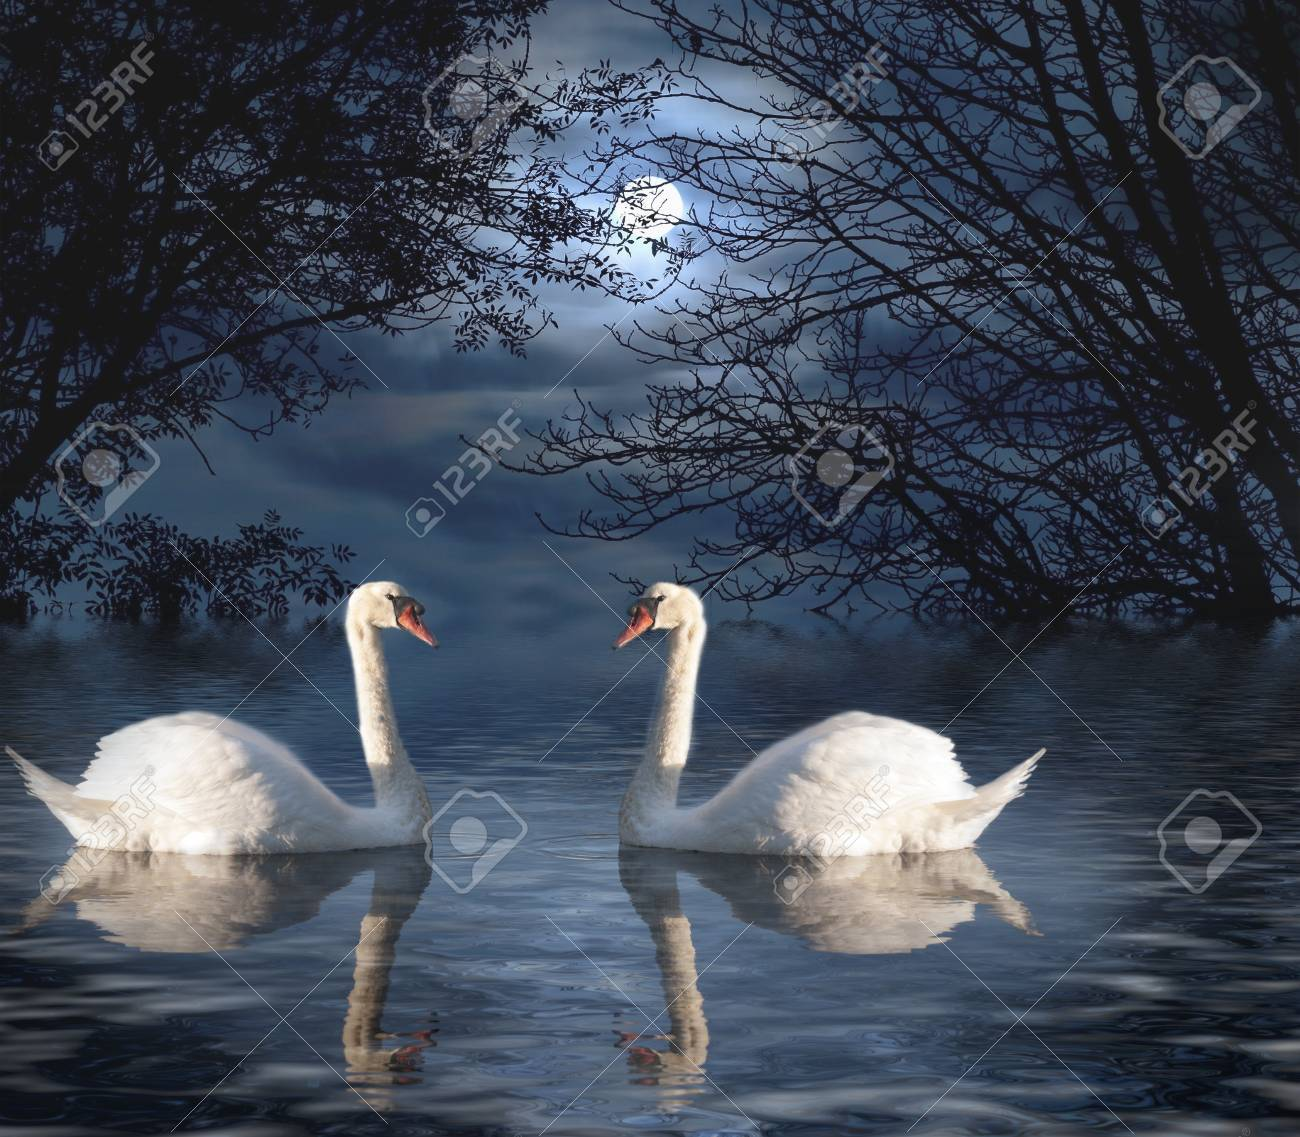 Swans By Moonlight >> Two White Swans Out For A Moonlight Swim Stock Photo Picture And